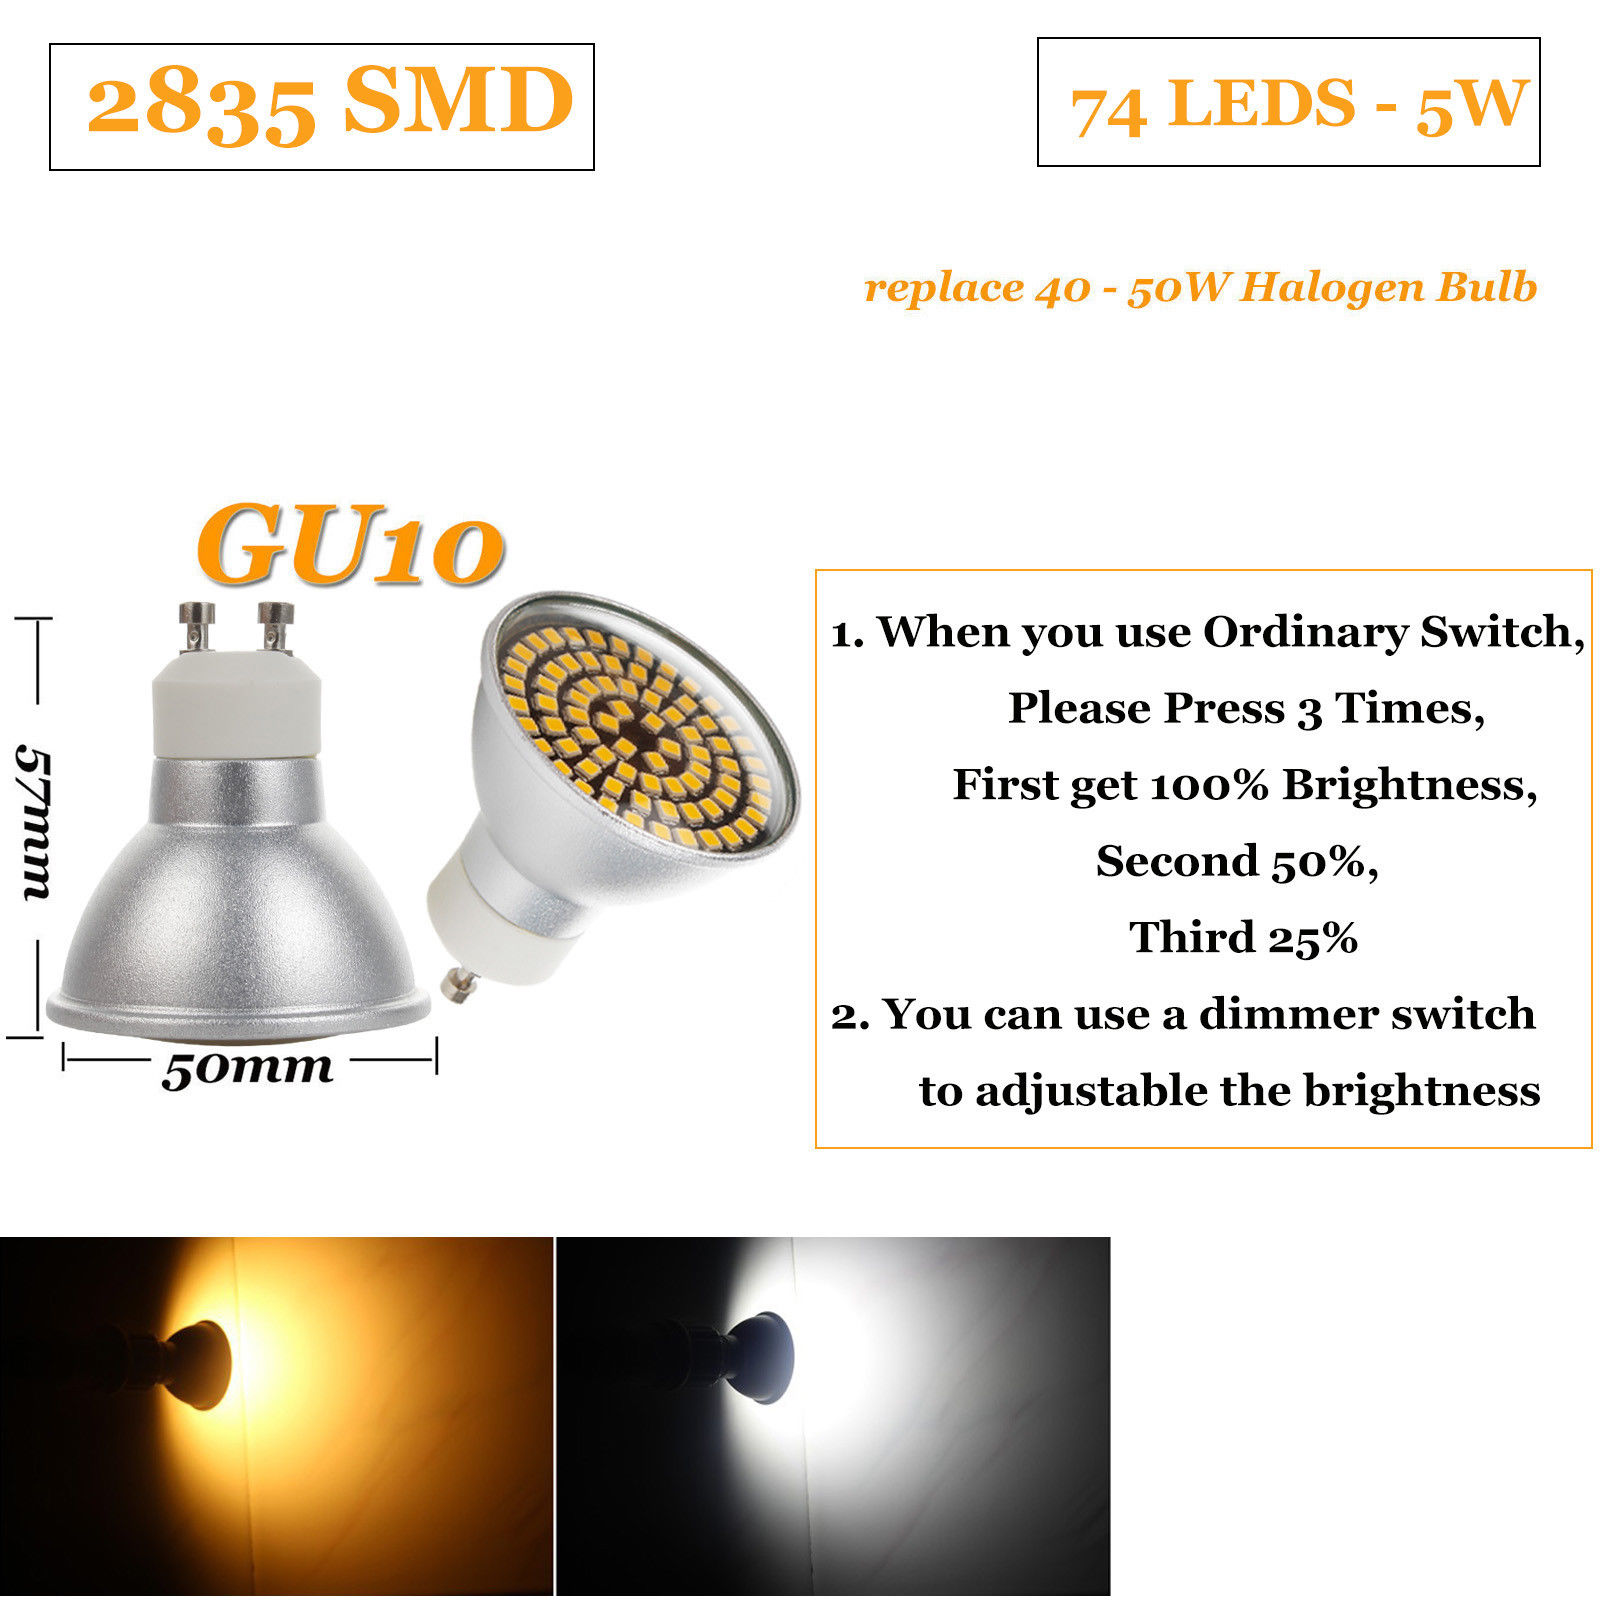 Dimmable Led Spotlight Bulb 5w Gu10 Mr16 2835 Smd 110v 220v Light Dimmer Description